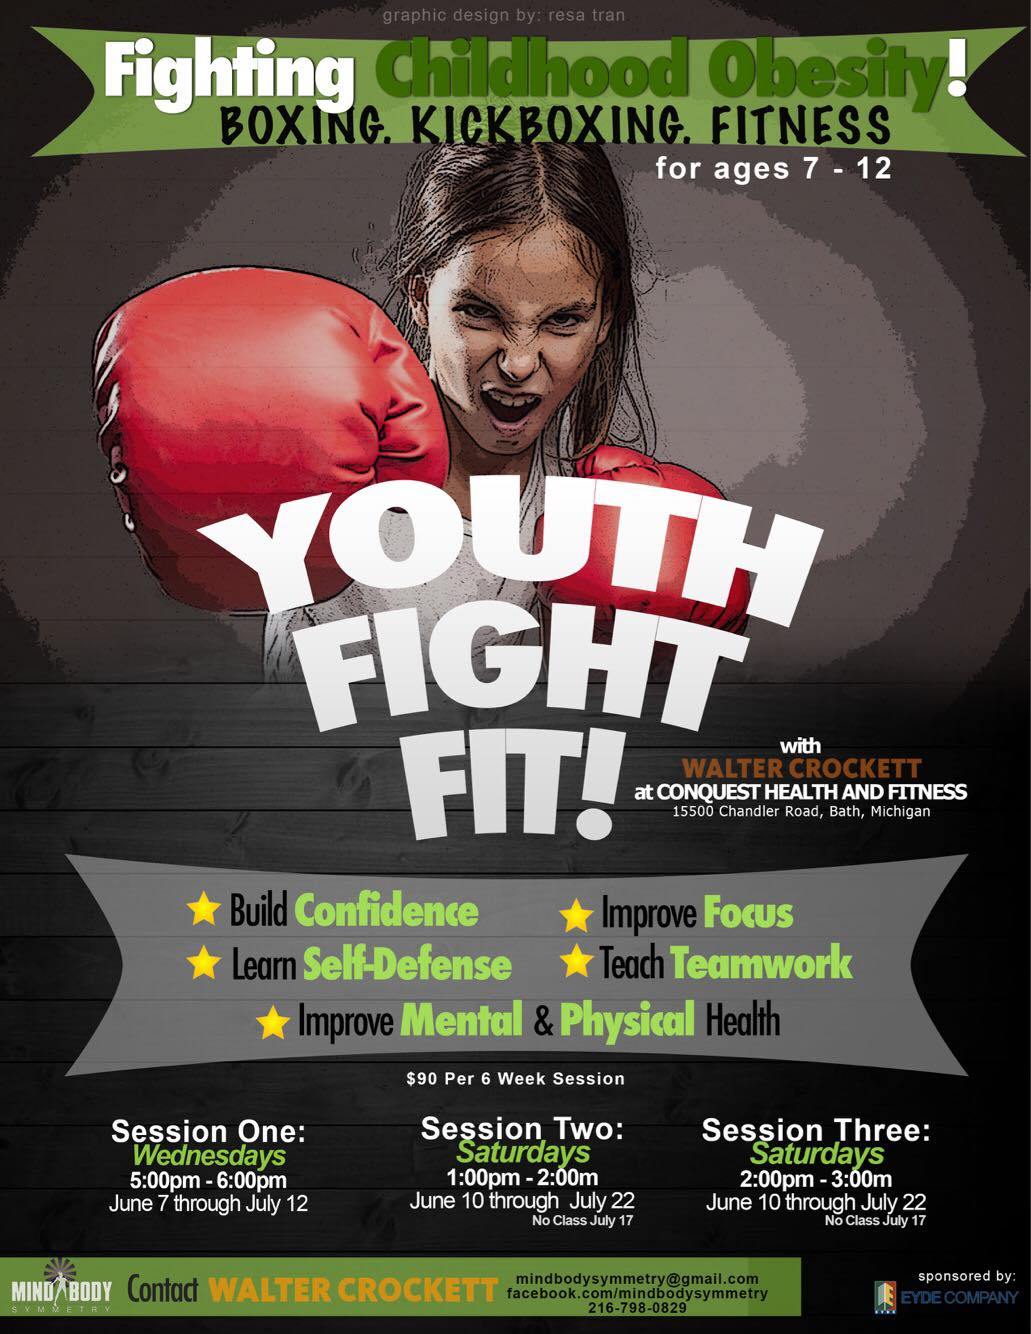 Youth FIght Fit June 2017.jpg